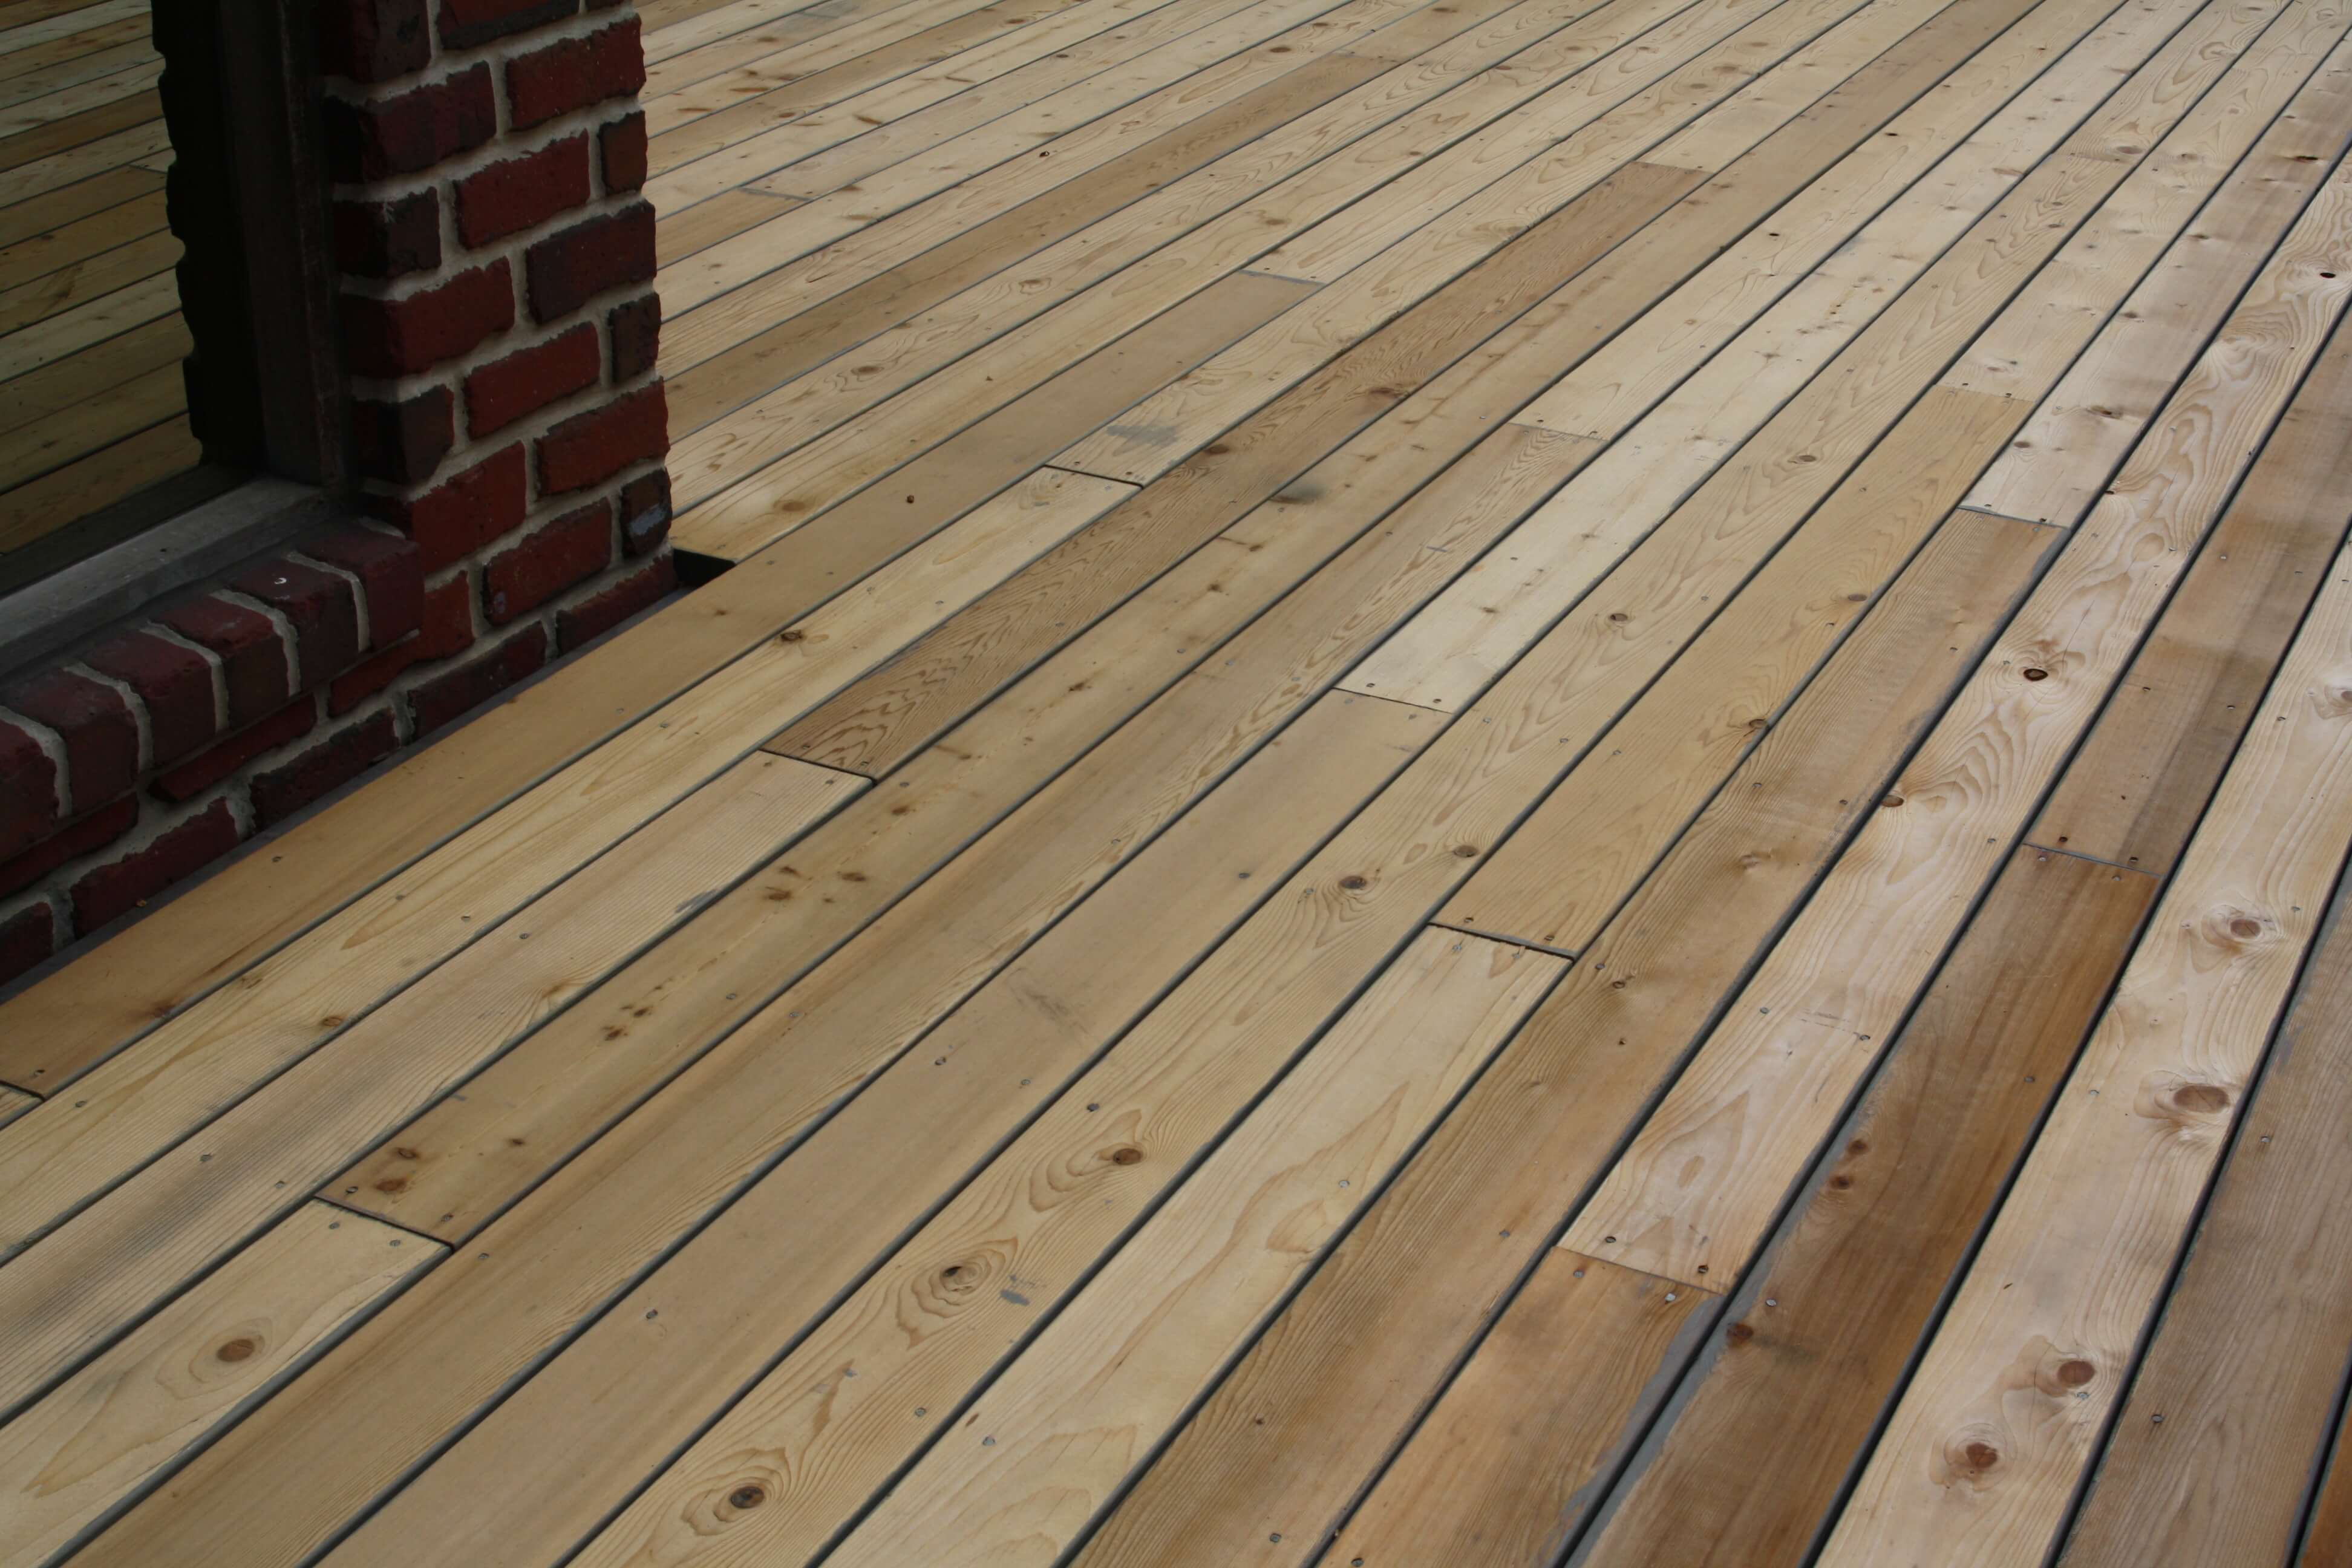 Deck boards that have been freshly sanded